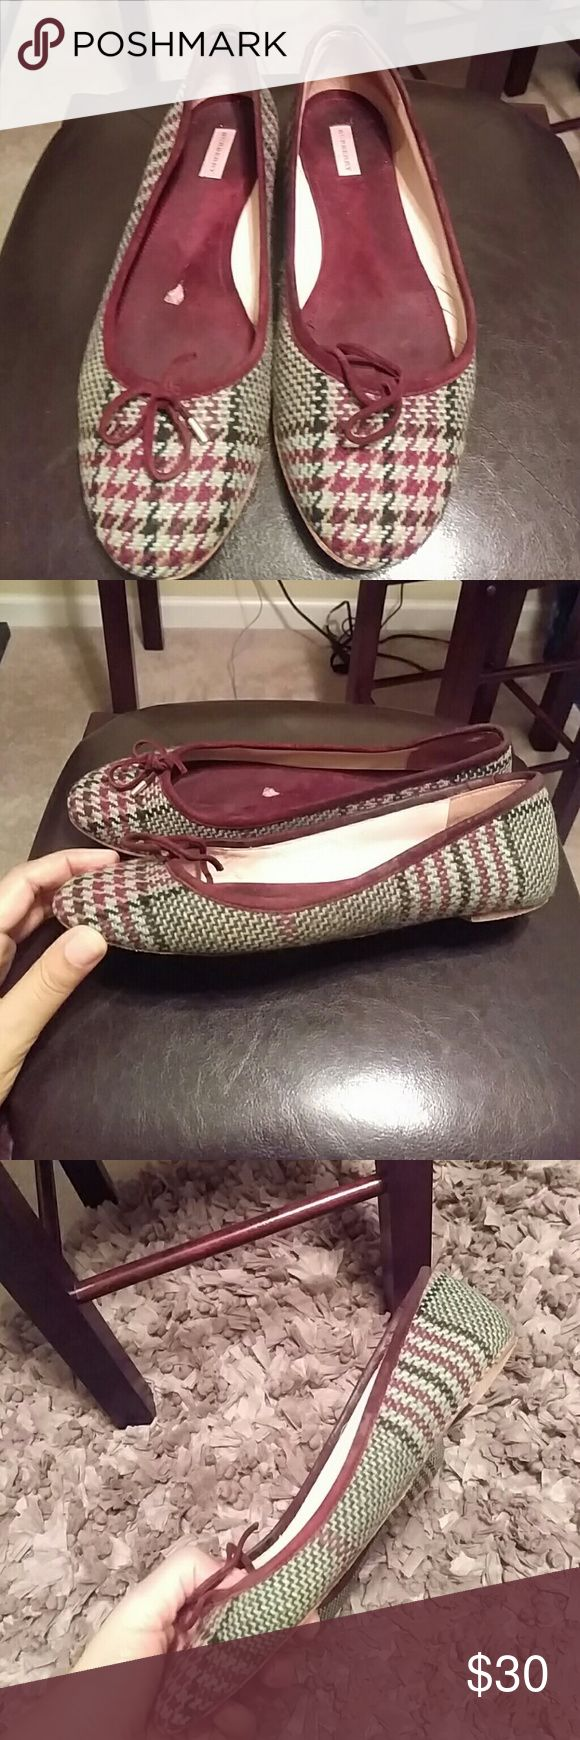 FUC! Authentic Burberry Ballet Flats Sz. 8.5 FUC! Fair used condition. Authentic Burberry Ballet Flats Sz. 8.5 (38.5) Very loved and very worn Burberry ballet flats...but Burberry none the less.  Bow tie front both missing other gold cap. Houndstooth design.  Green, burgundy and black. Plenty of life left.... Vintage. Please look at pictures closely to file connection as hooked opinion may differ from mine on the condition. Burberry Shoes Flats & Loafers